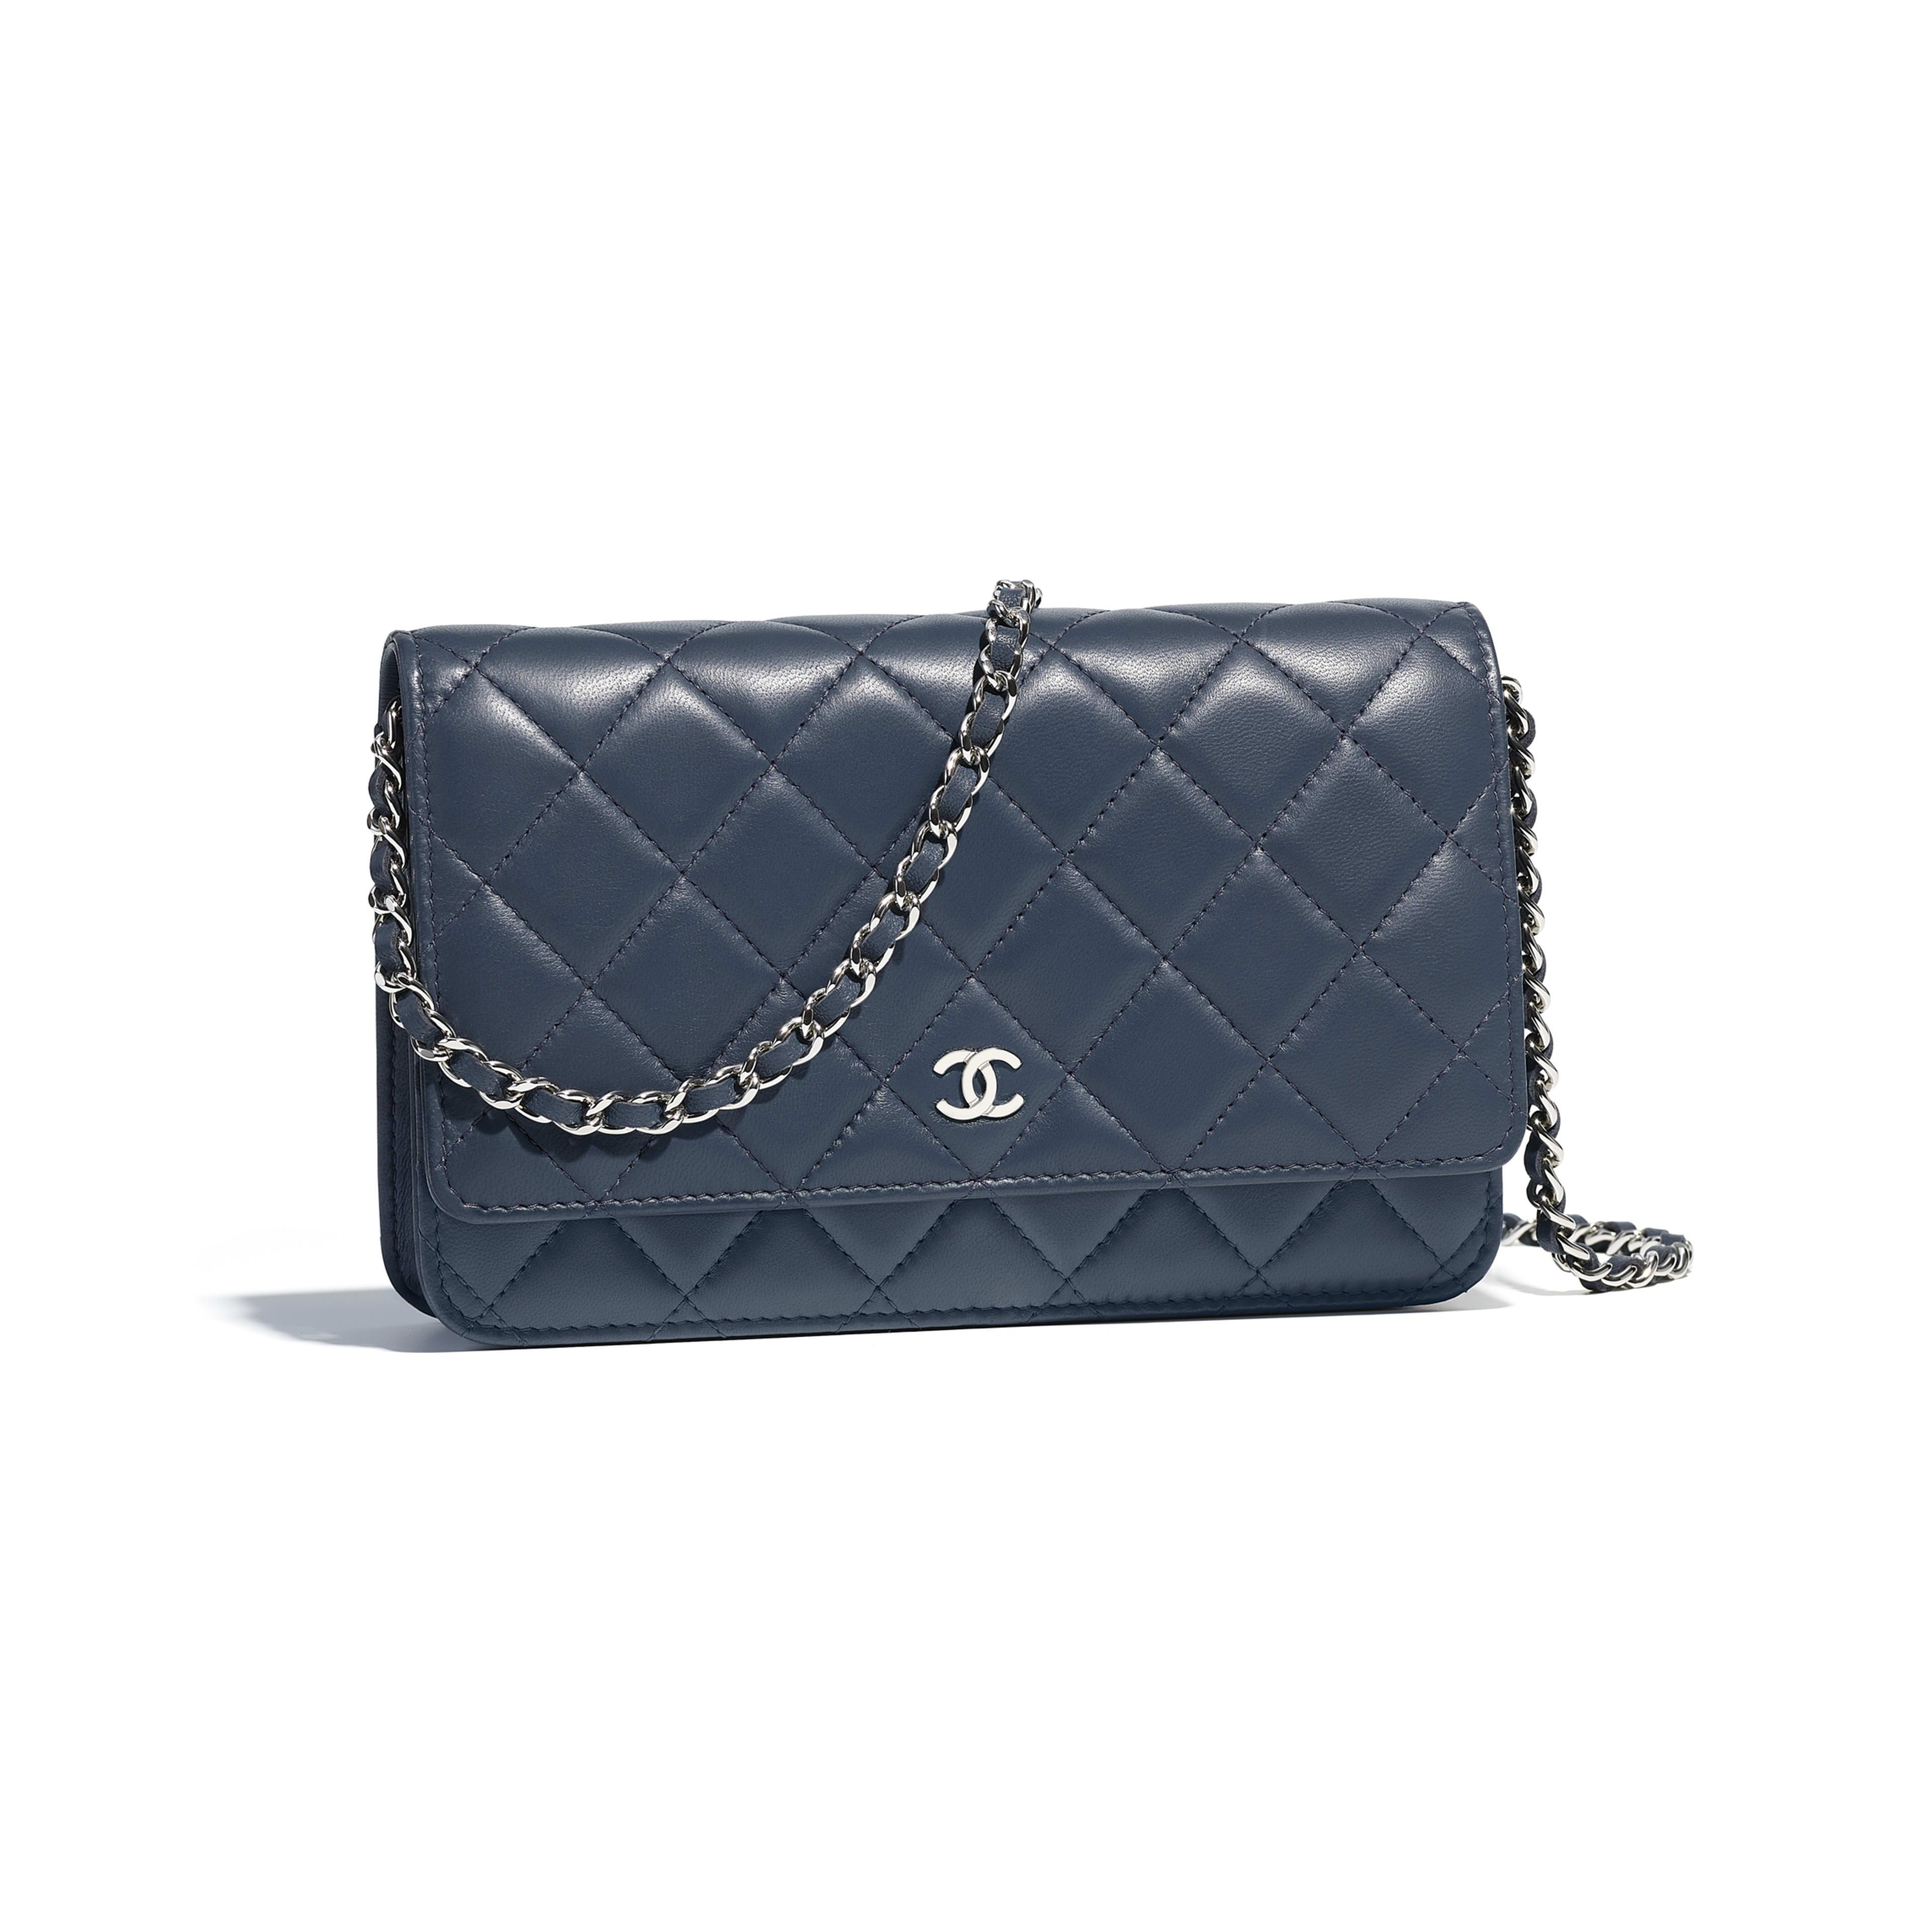 Classic Wallet on Chain - Blue - Lambskin & Silver-Tone Metal - Default view - see full sized version